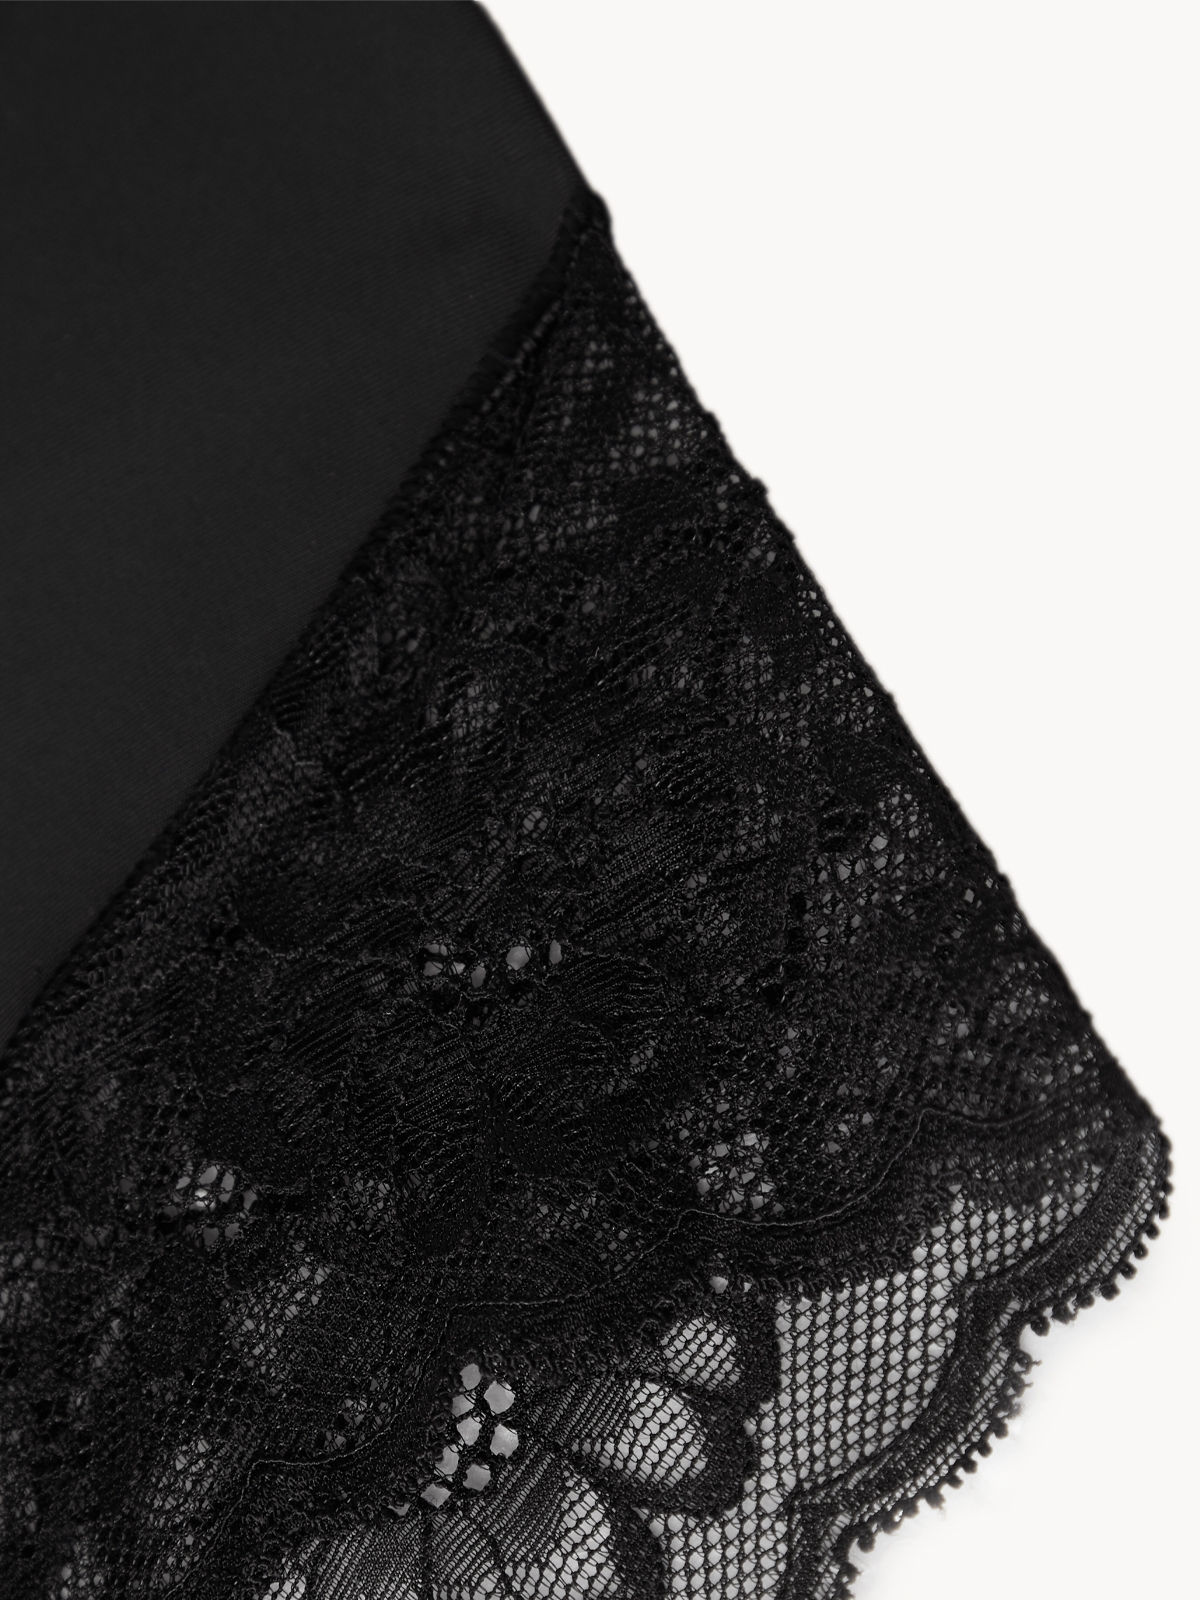 Up and Under TGIF Lace Panty Black